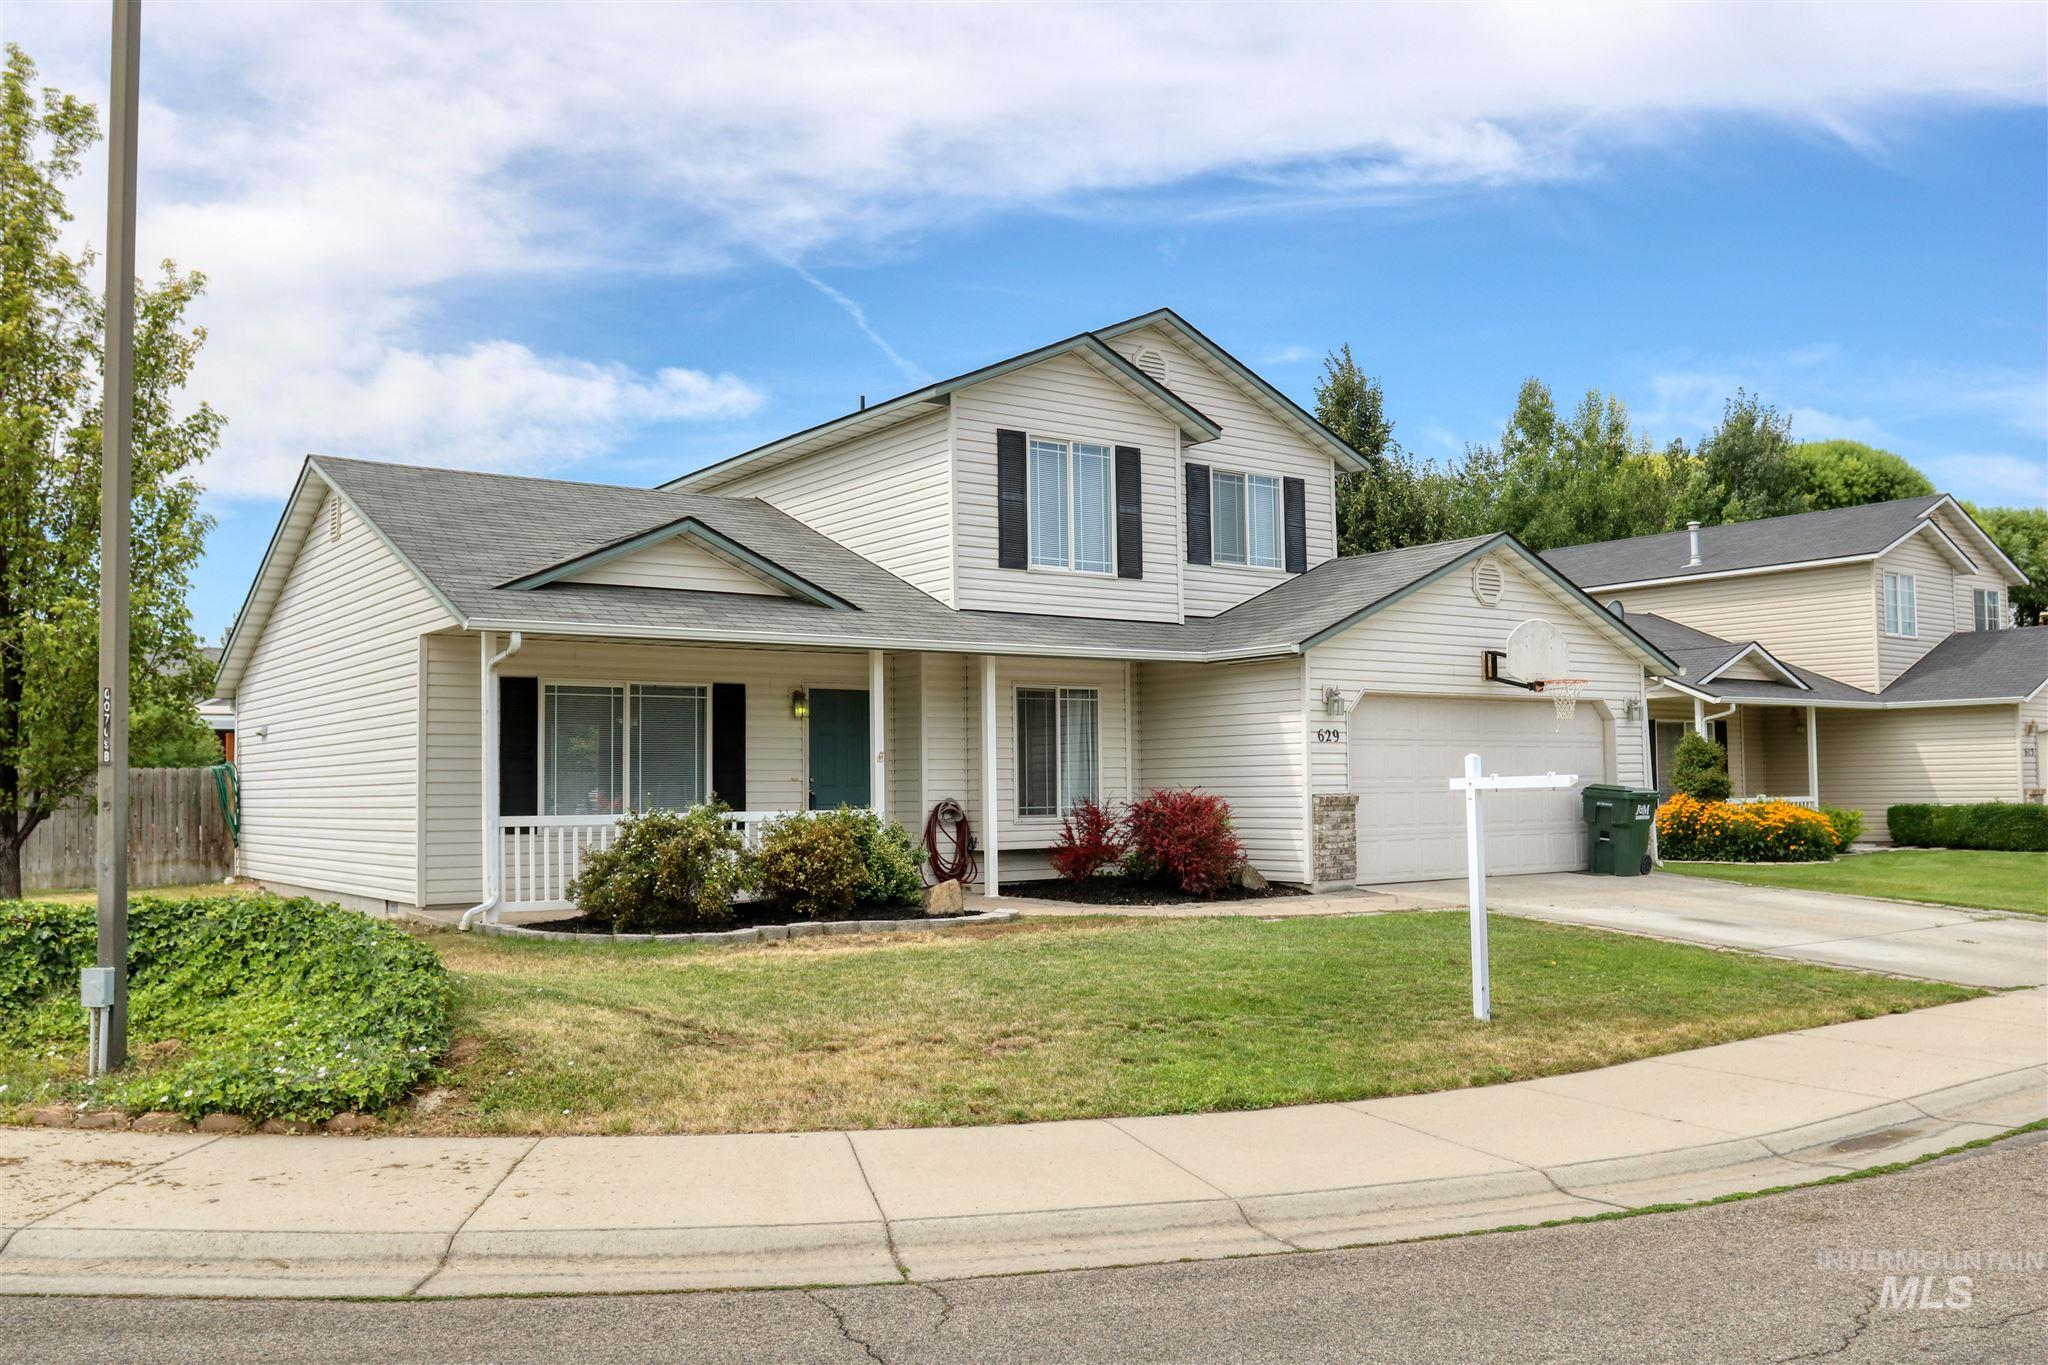 Photo for 629 E Rosemary, Kuna, ID 83634 (MLS # 98775845)